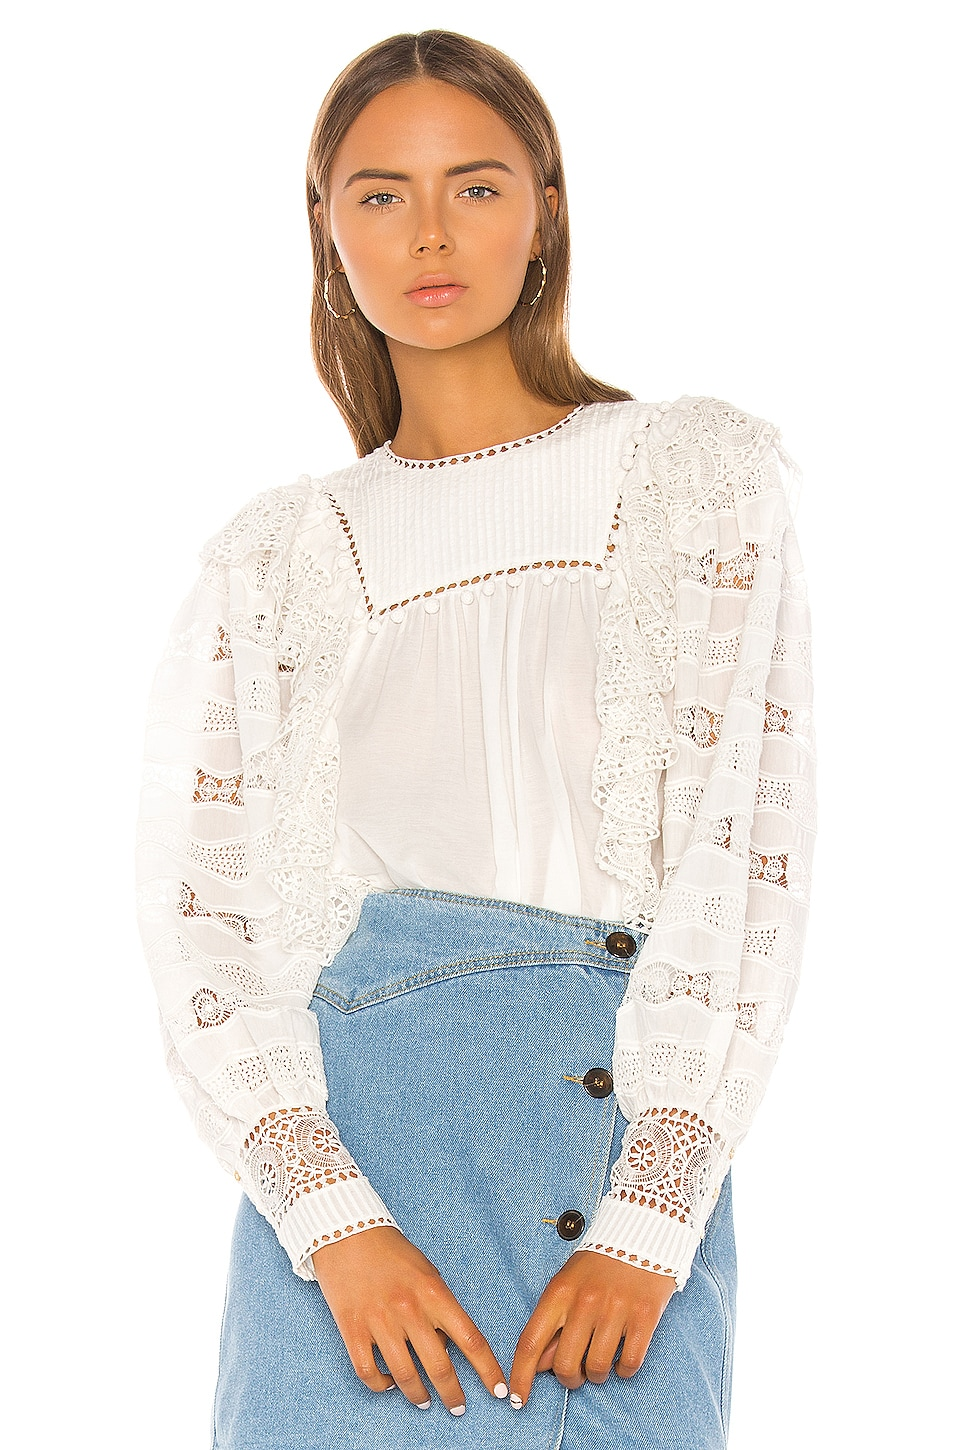 Ulla Johnson Lily Blouse in Blanc